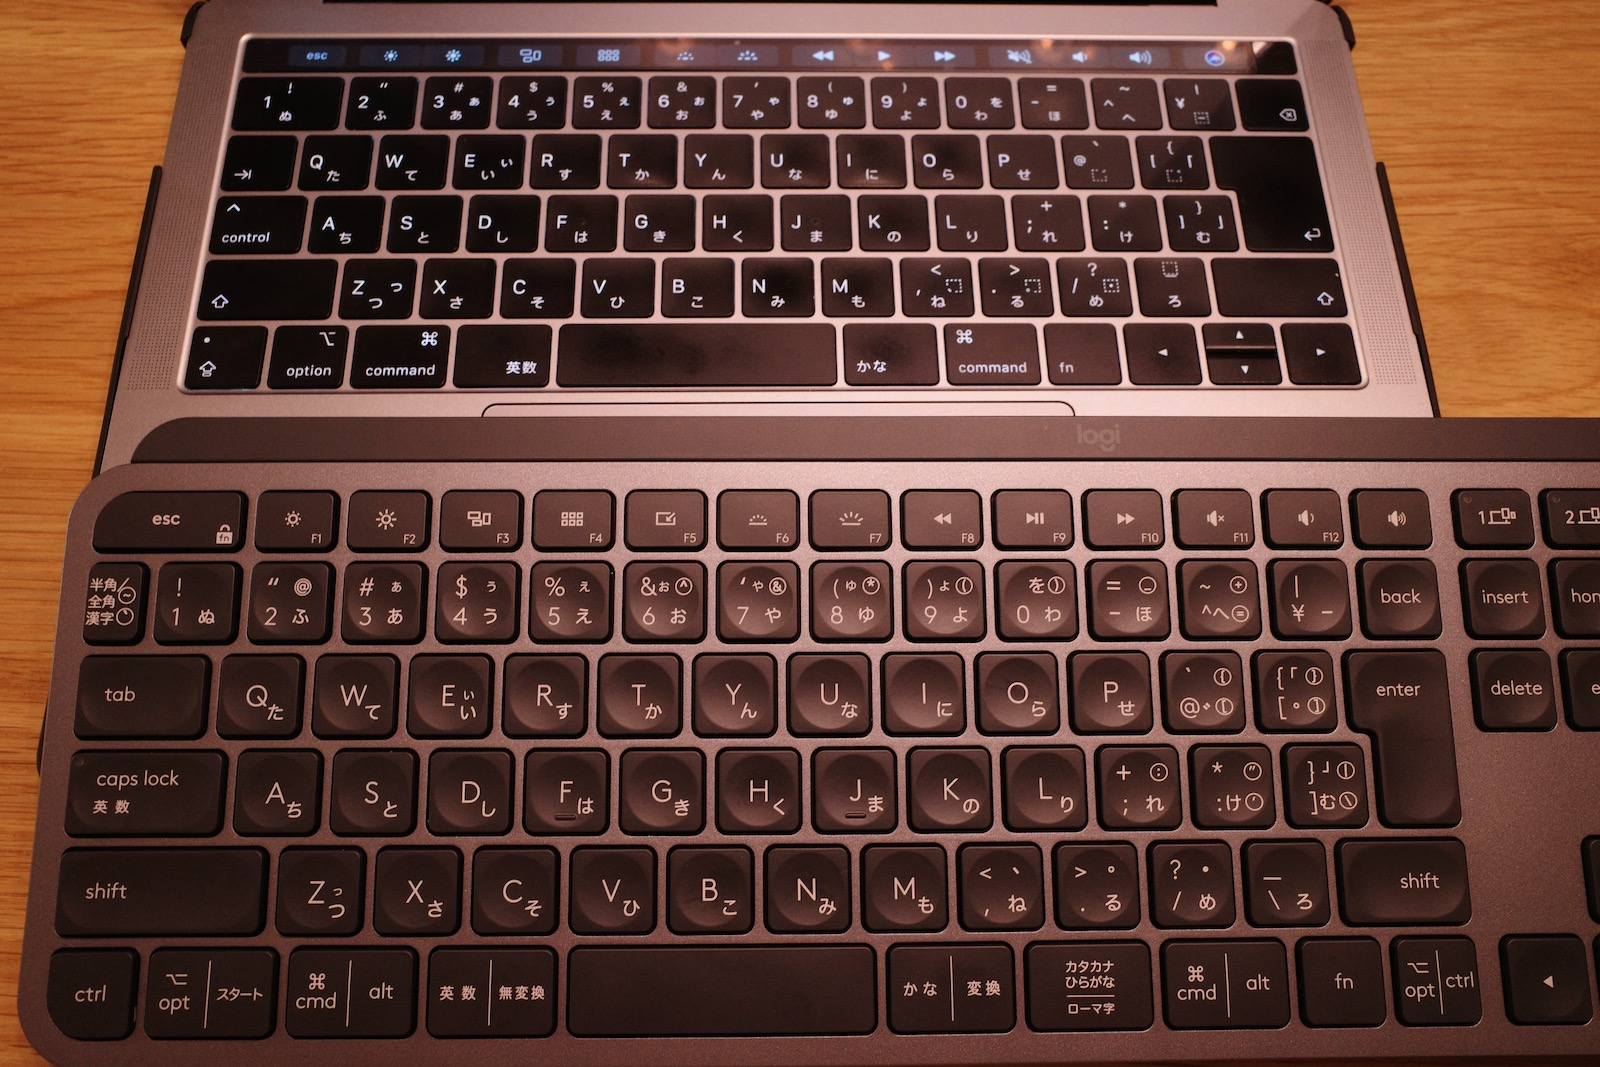 KX880 MacBook Pro keyboard